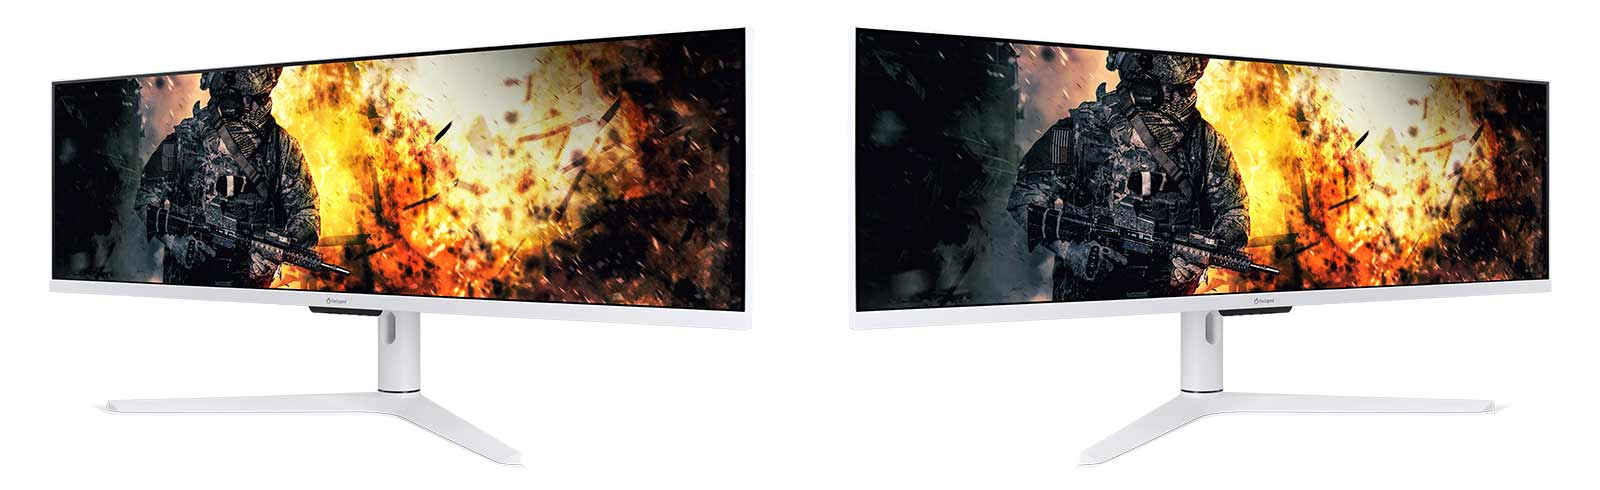 """The AOpen 43XV1C P is unveiled with a 43.8"""" IPS display with a 3840x1080 resolution, 120Hz refresh rate"""